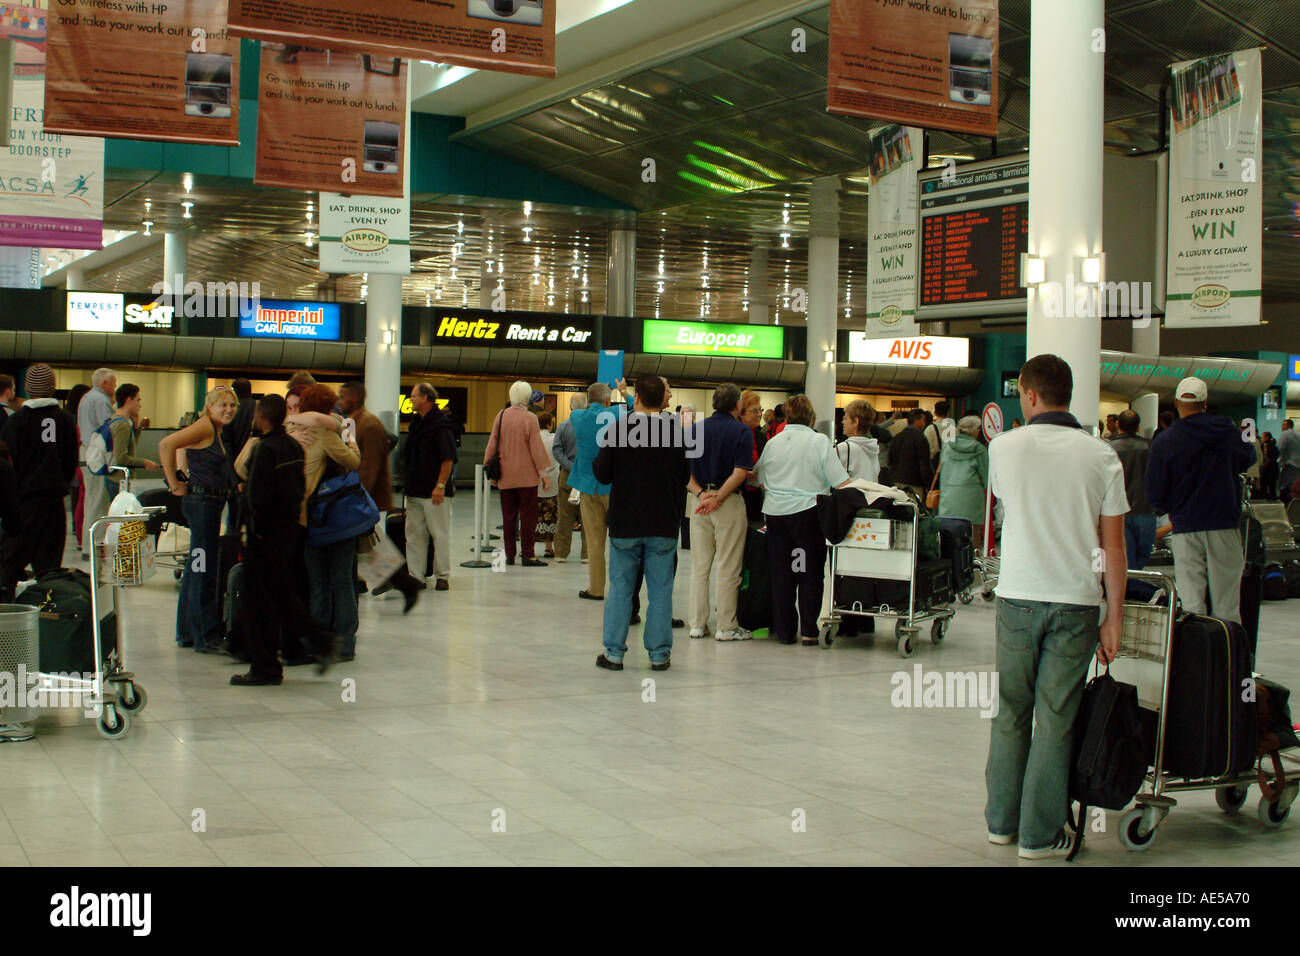 South Africa Cape Town International Airport Arrivals Hall Car Hire